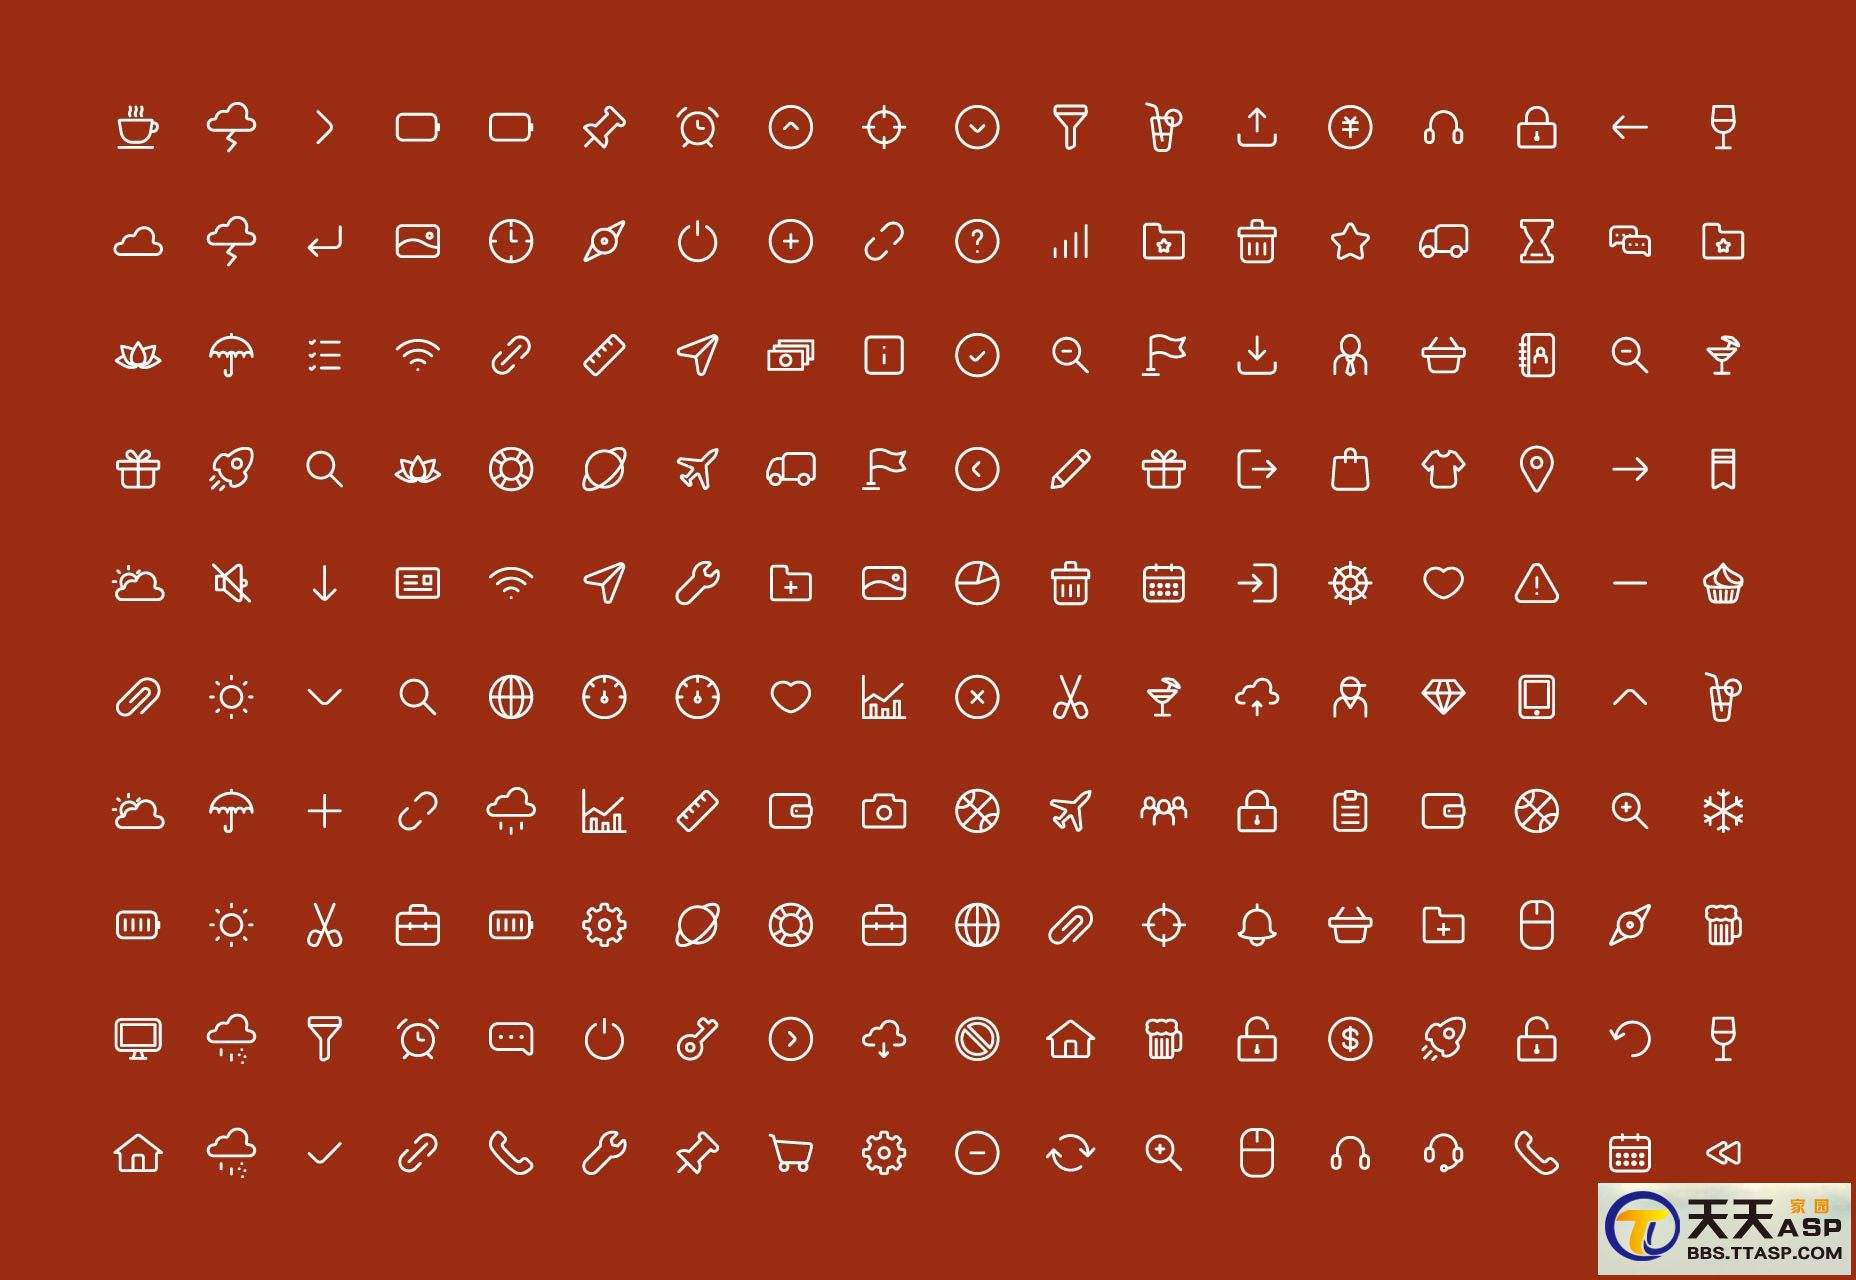 Thin Line UI Icons 170.jpg